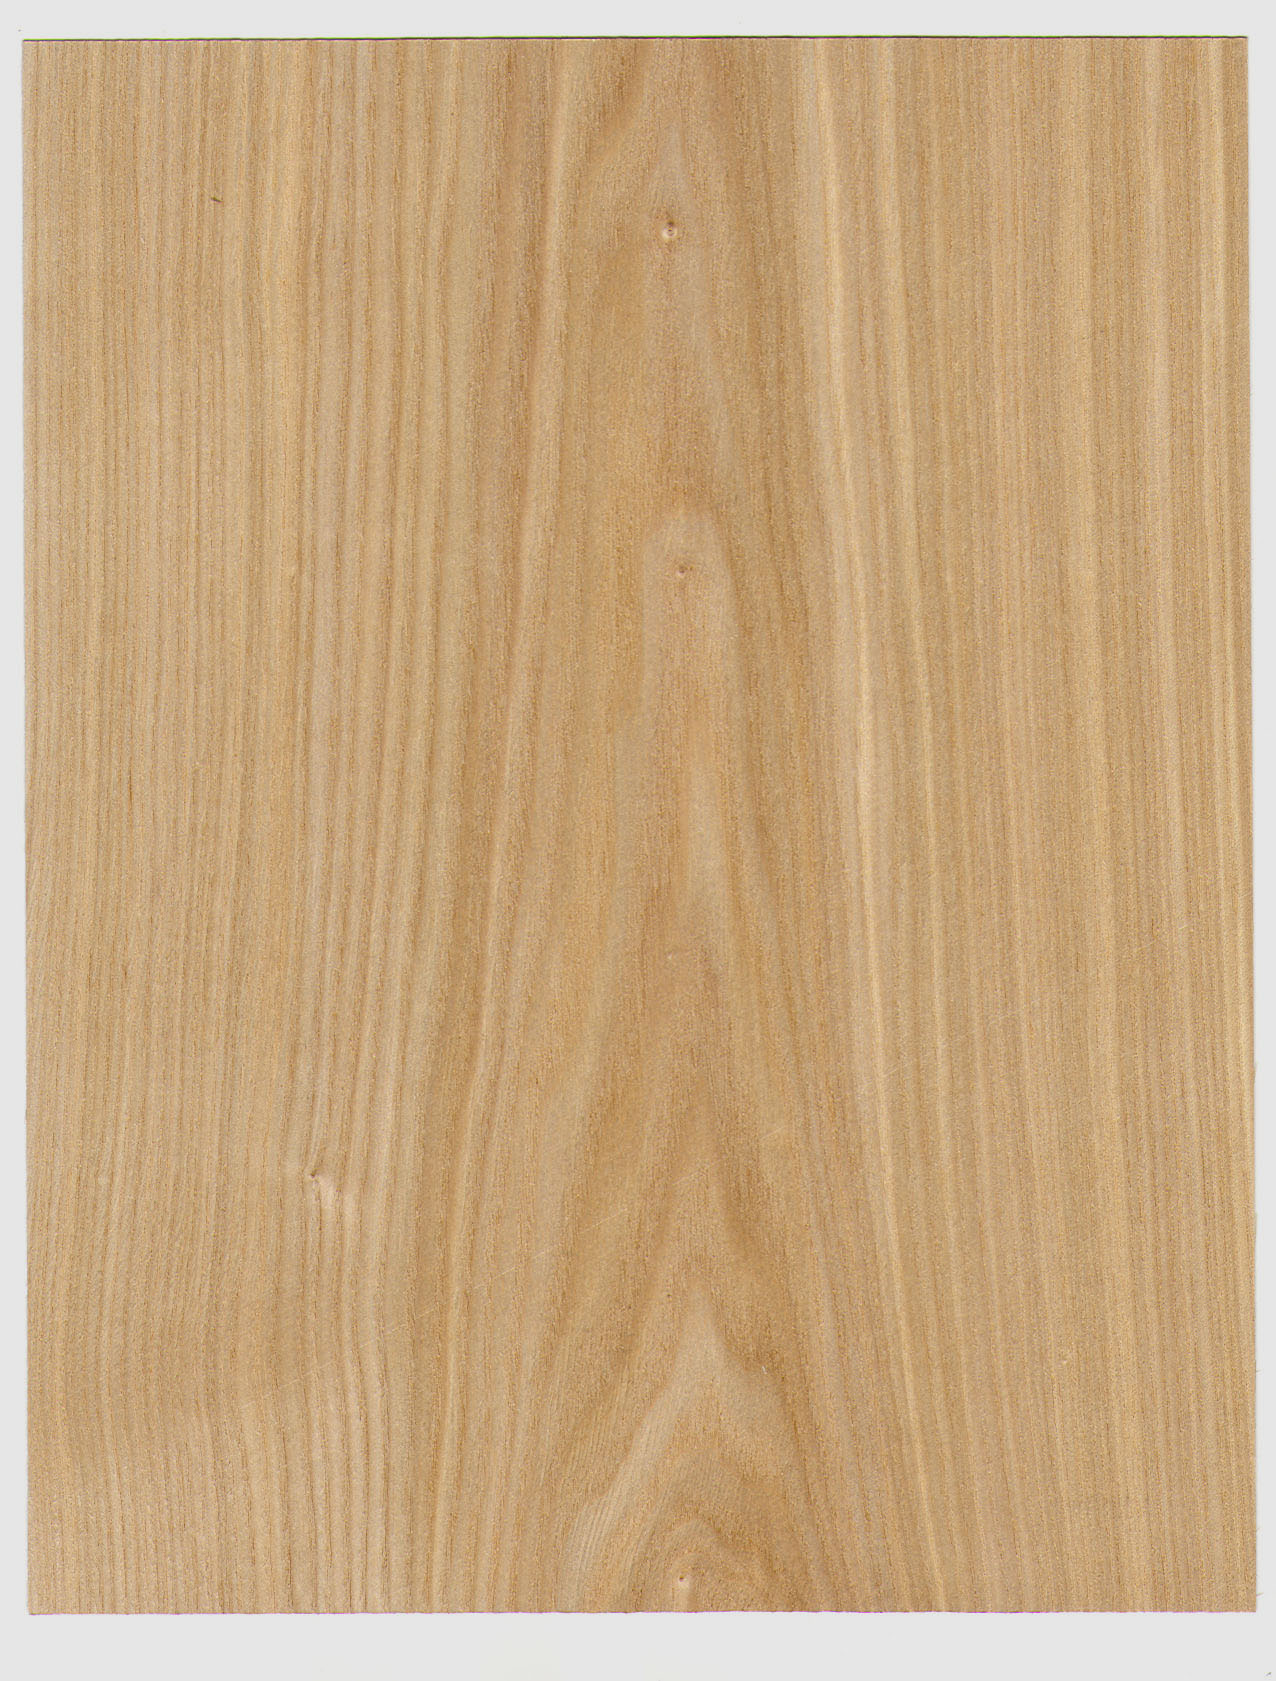 wood Texture, laminate, download photo background, wood background texture image